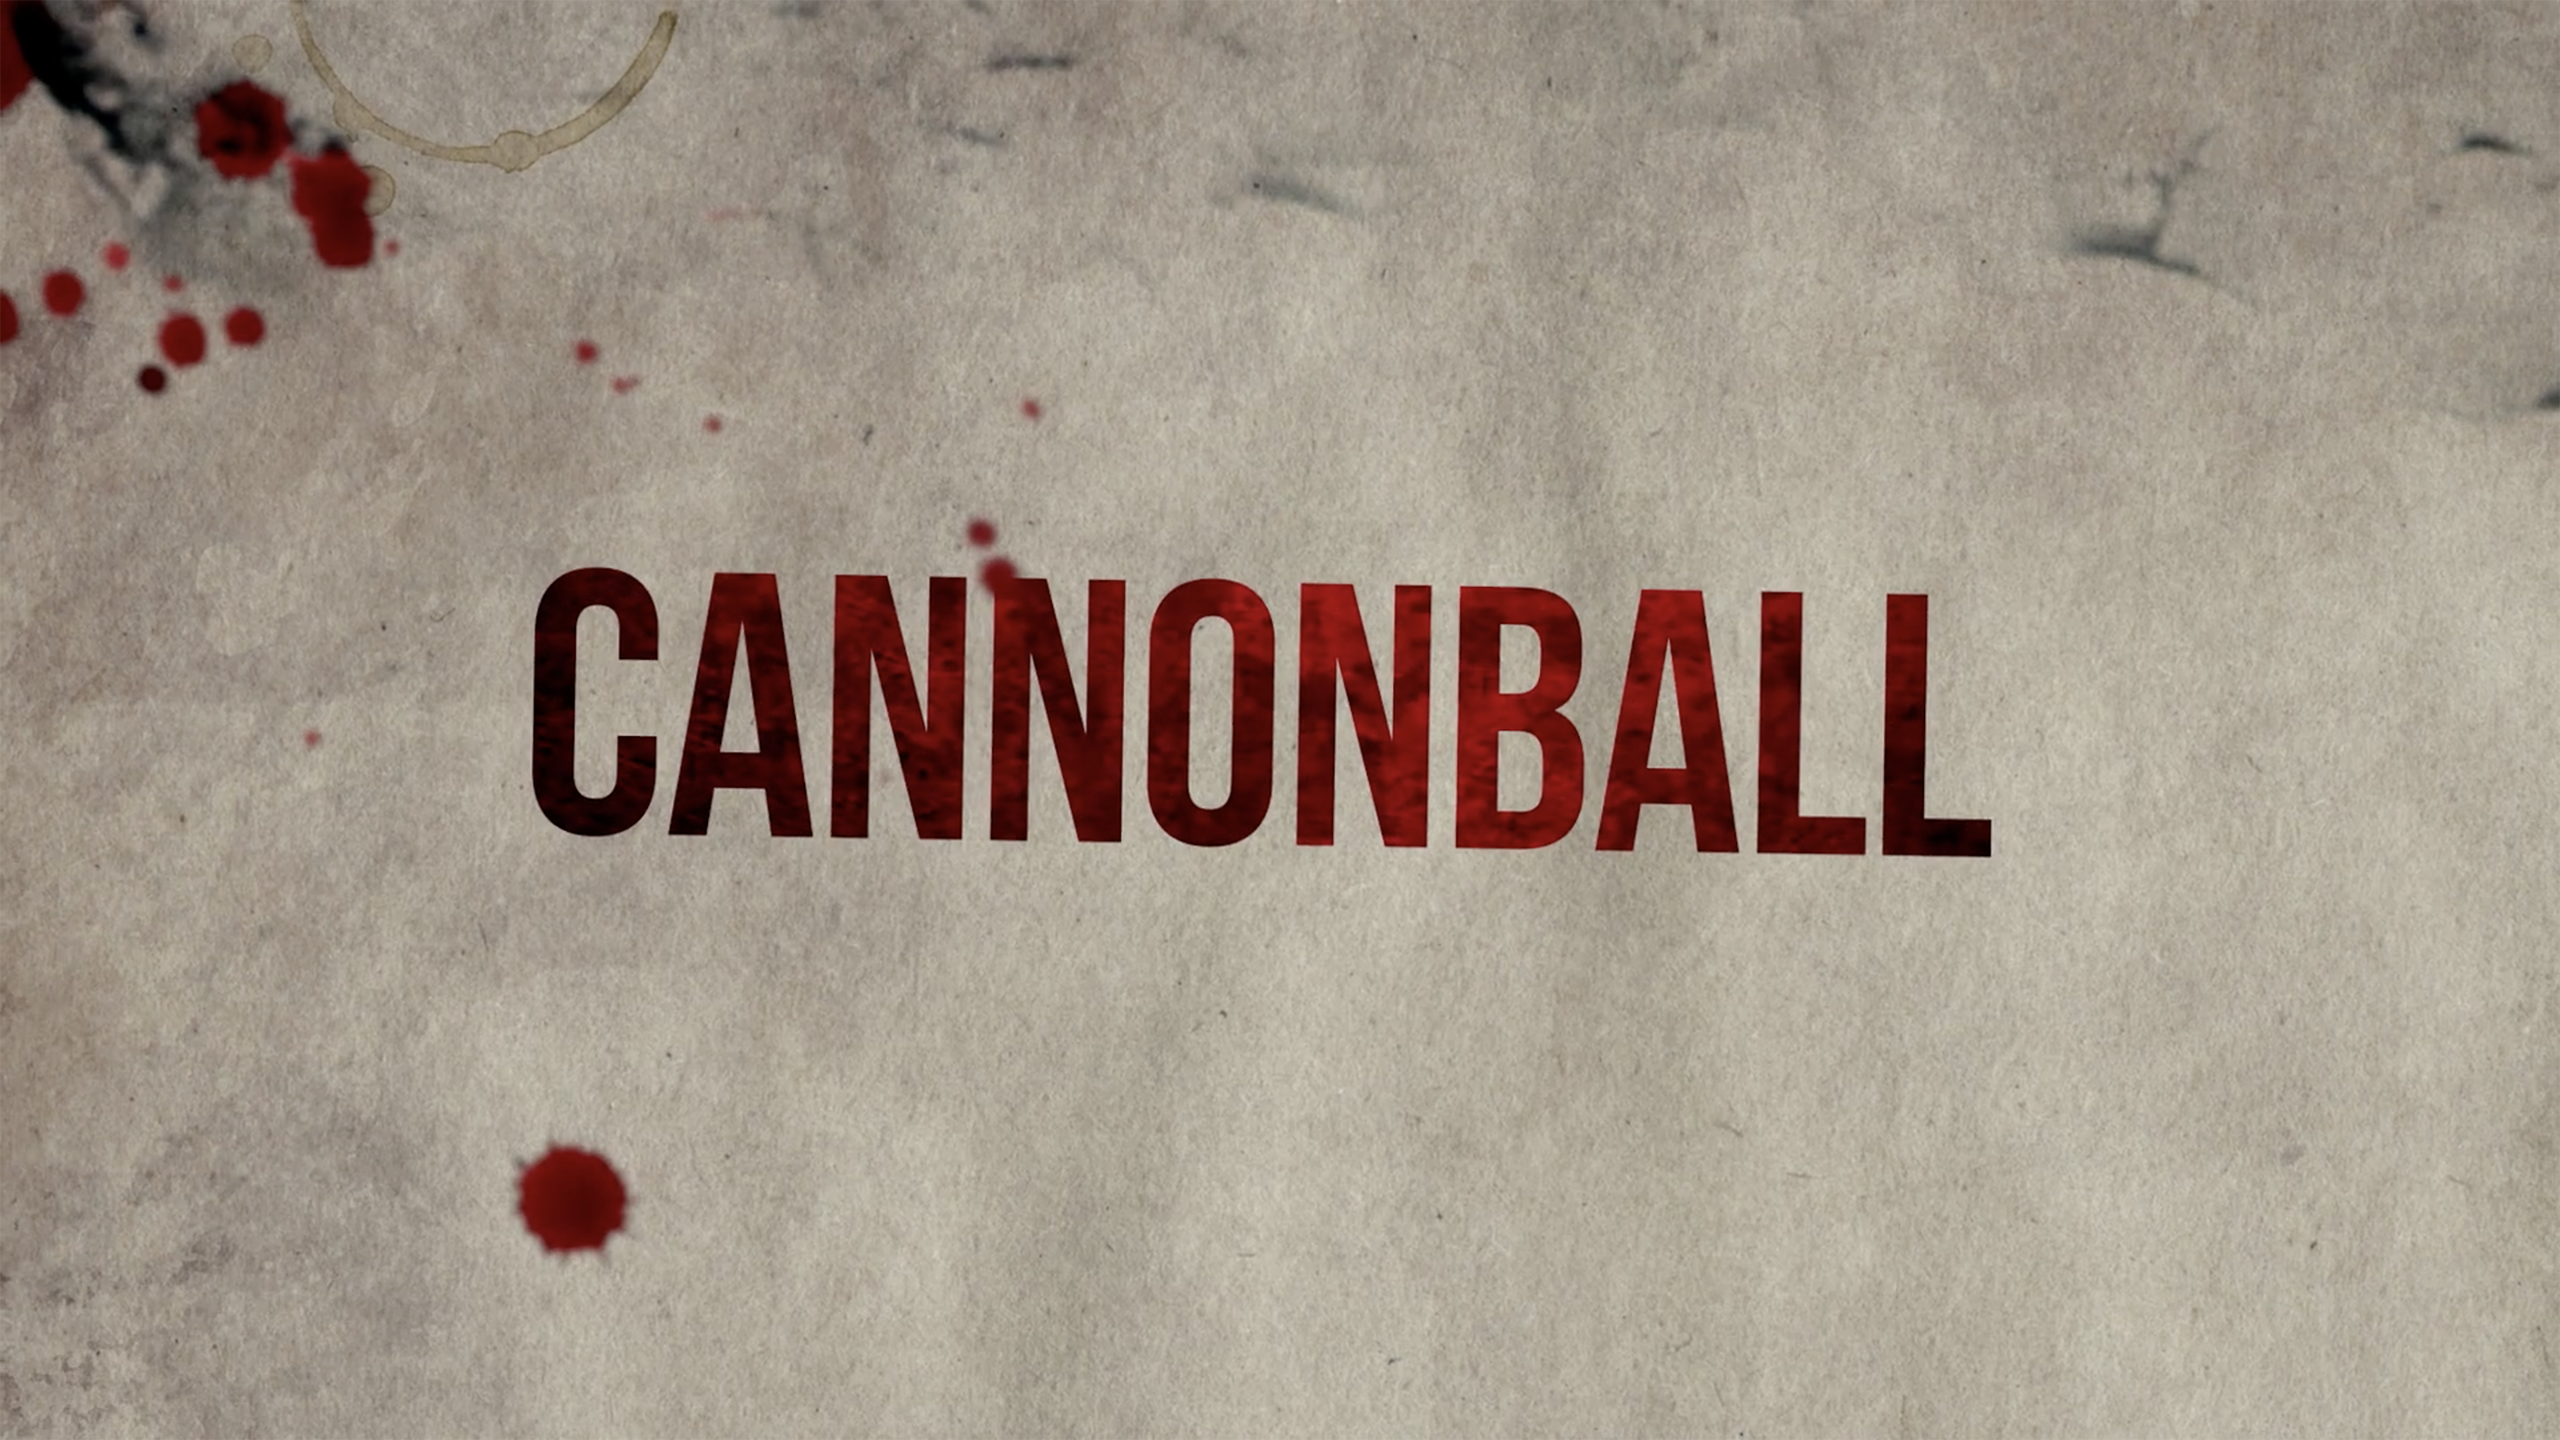 CANNONBALL IMAGE